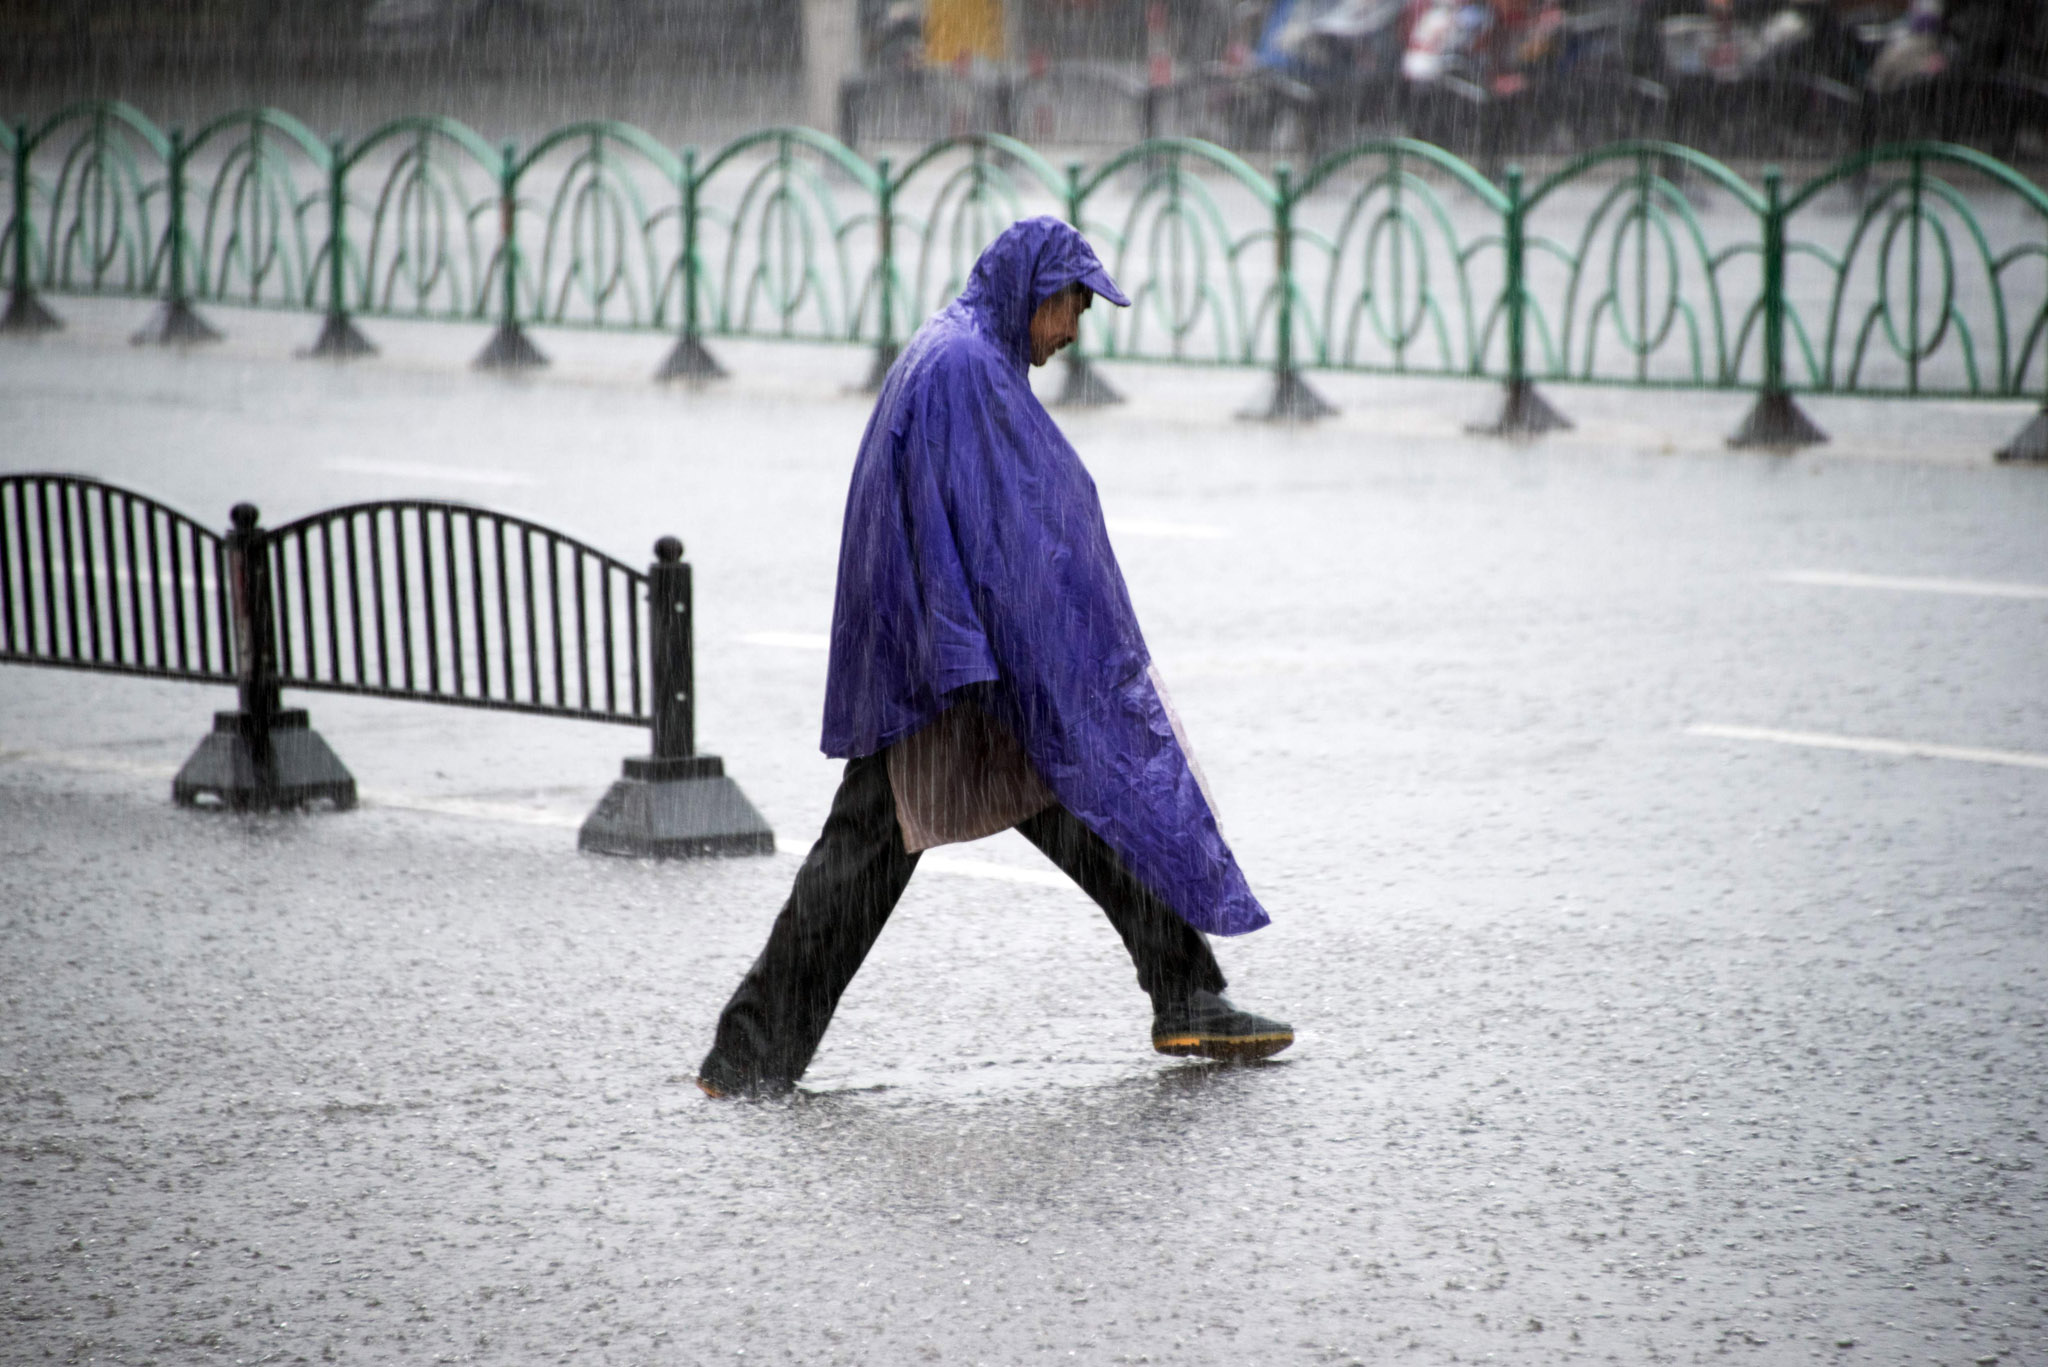 A man crosses a flooded street during rainfall in Shanghai